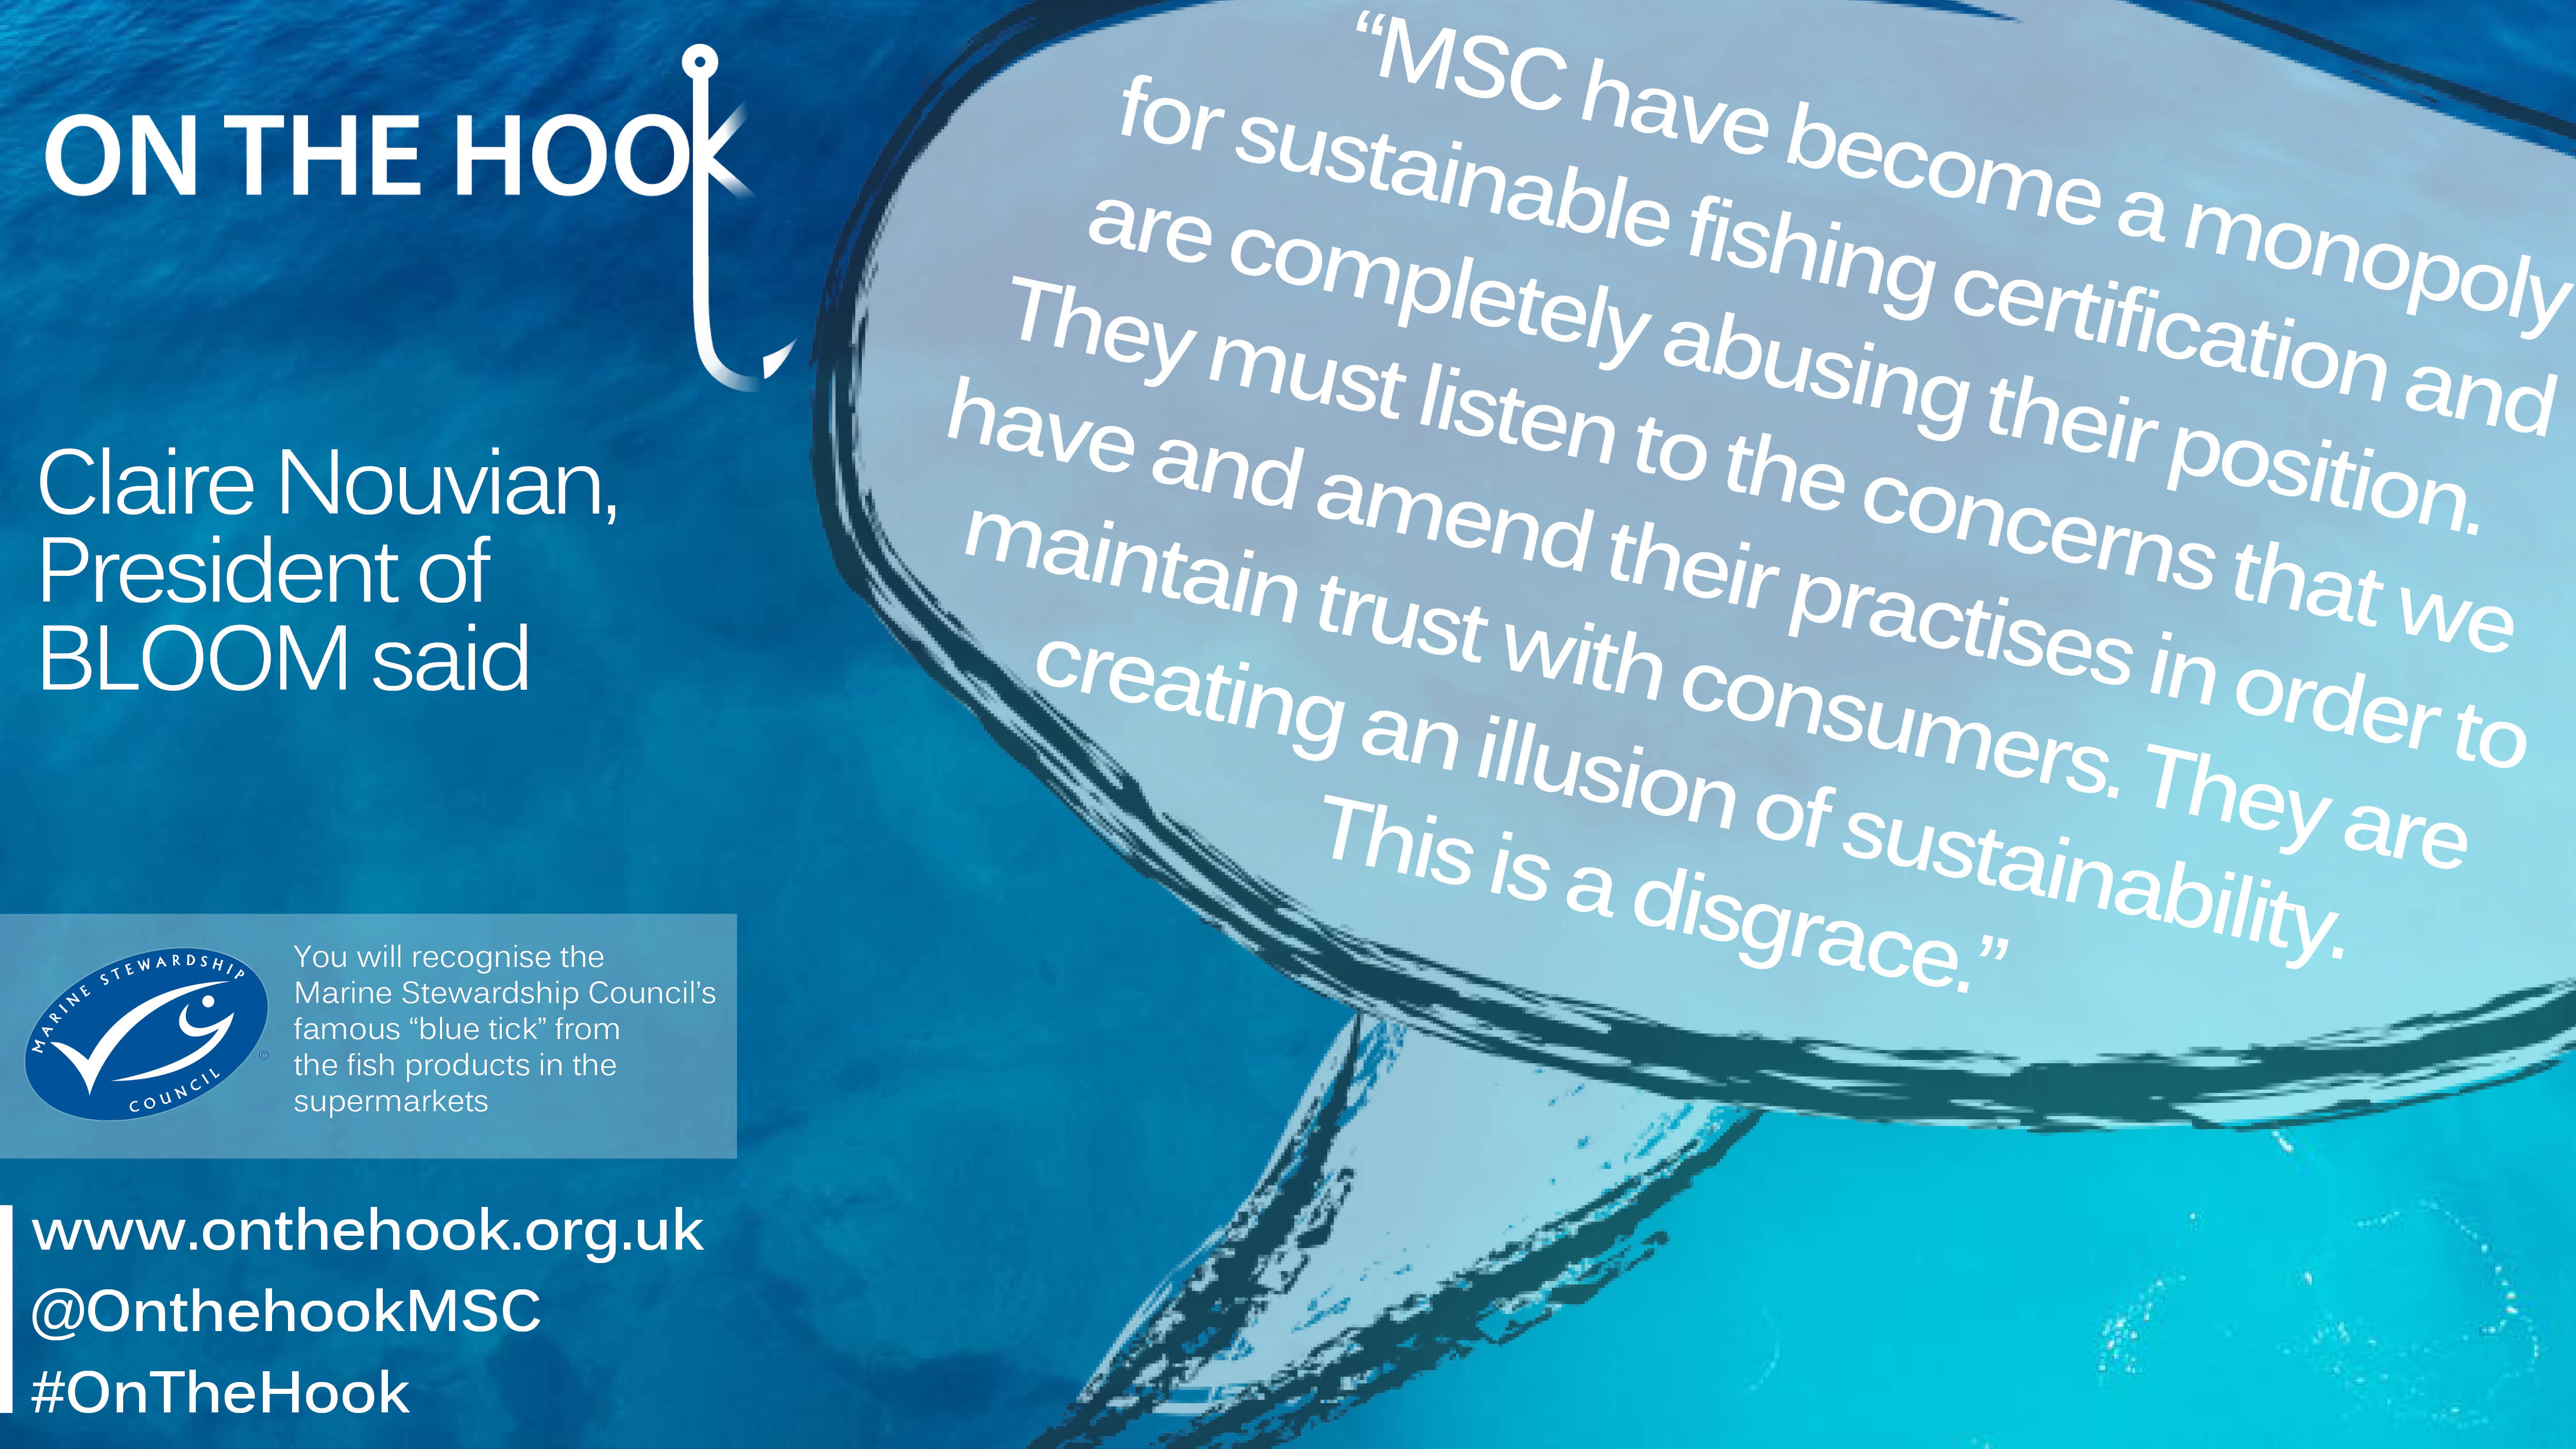 Bloom association msc caught up in a turmoilagain the survey allows us to conclude that a majority of the persons surveyed would lose confidence in the msc should the pna fisherys certificate be renewed xflitez Choice Image